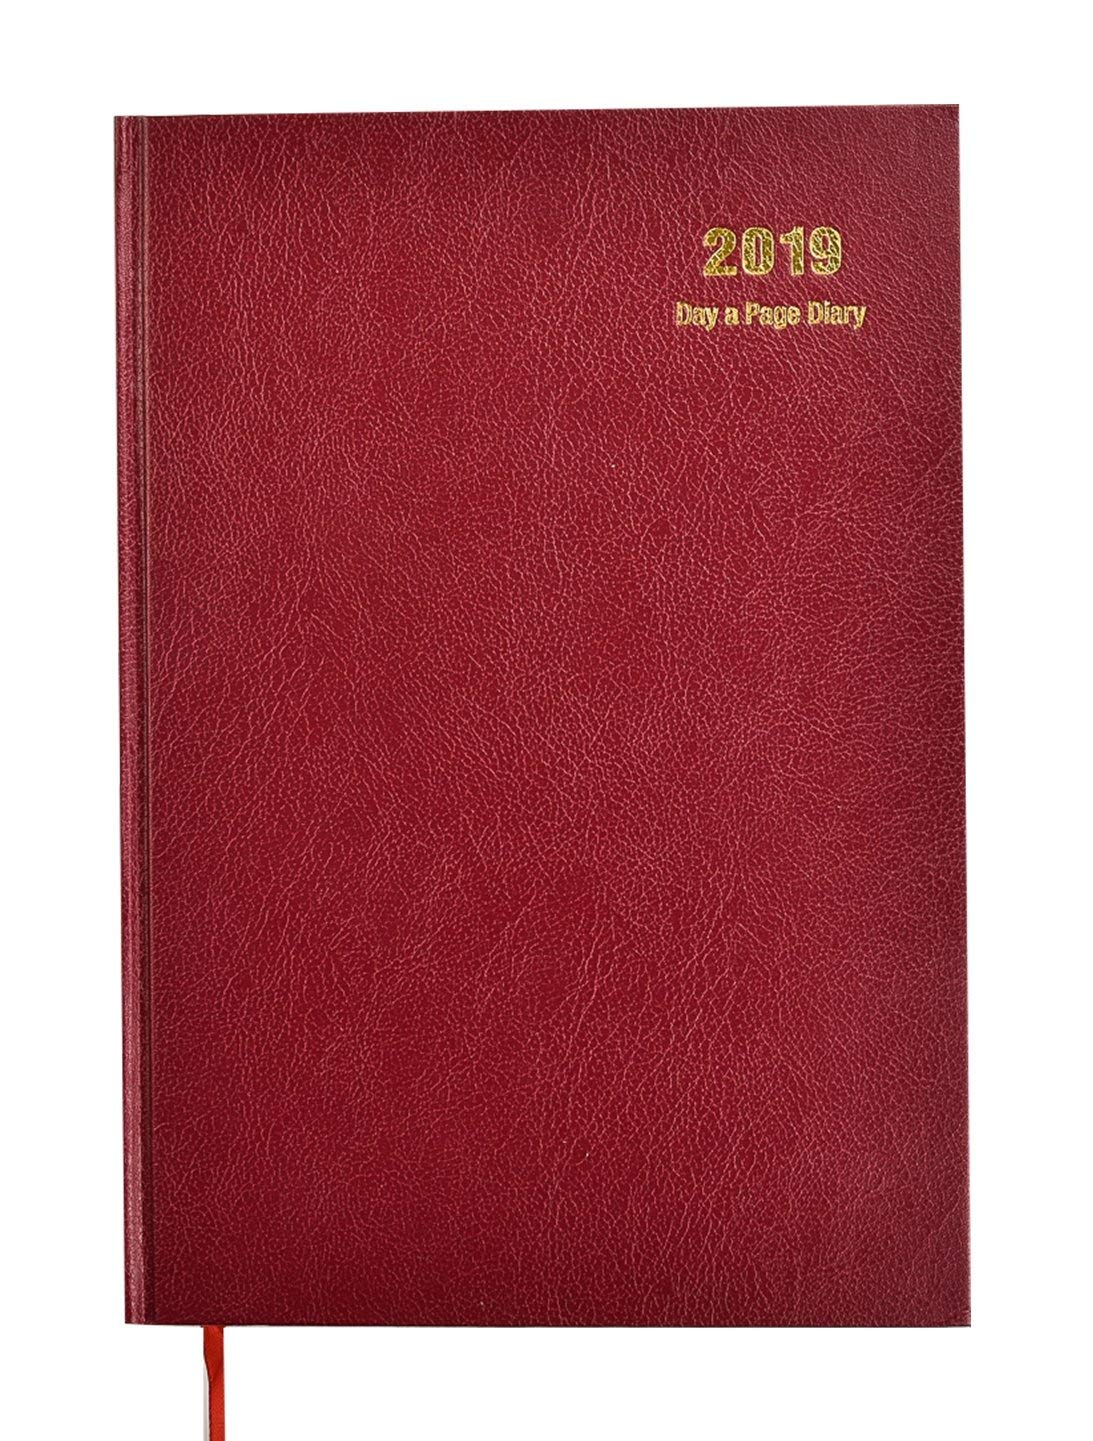 Amazon.com : Arpan 2019 Diary, A4 One Day to a Page Diary ...